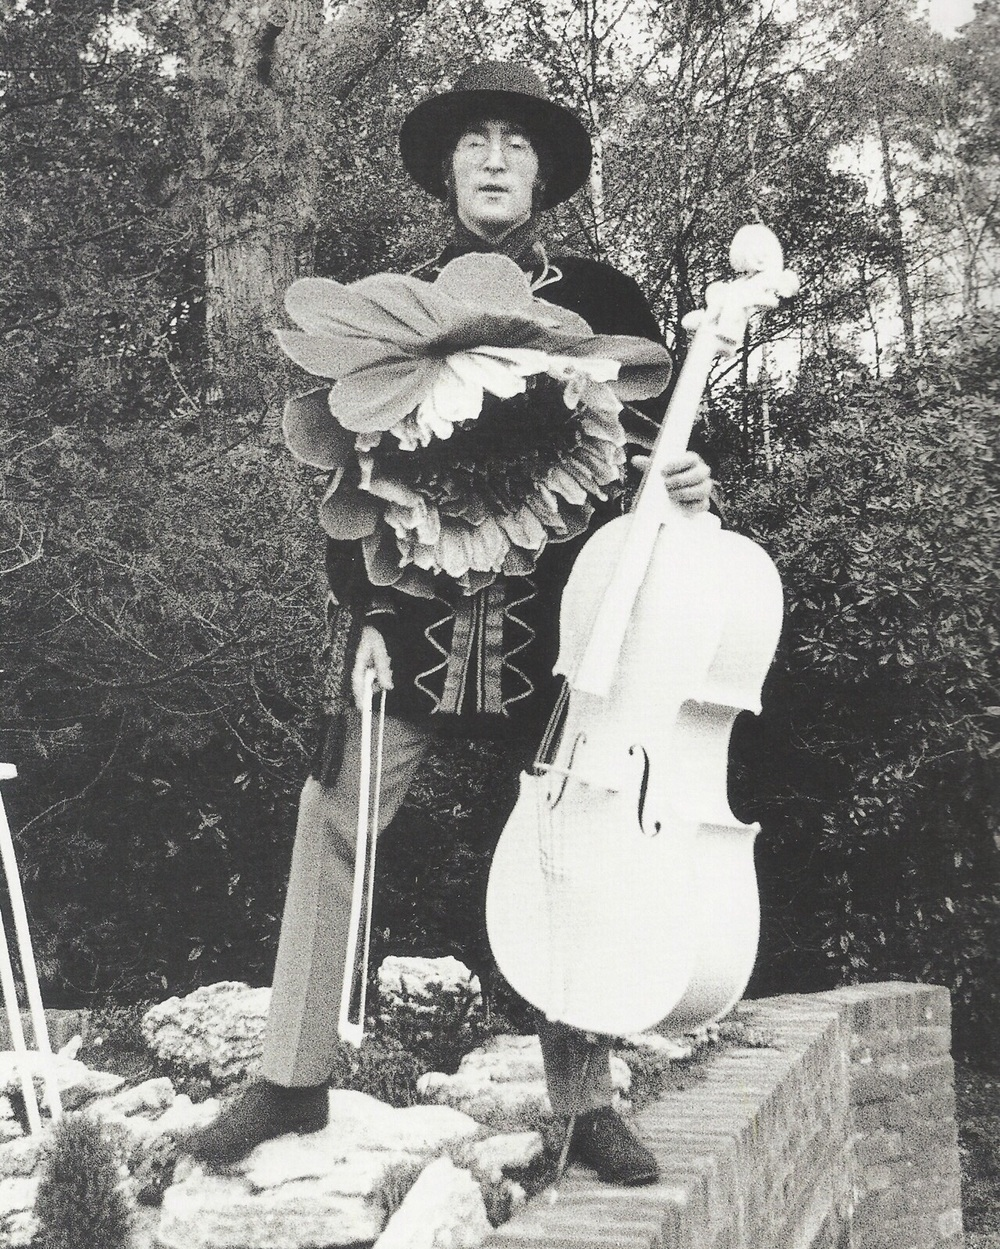 John Lennon at Ringo's home in Weybridge, 1967.